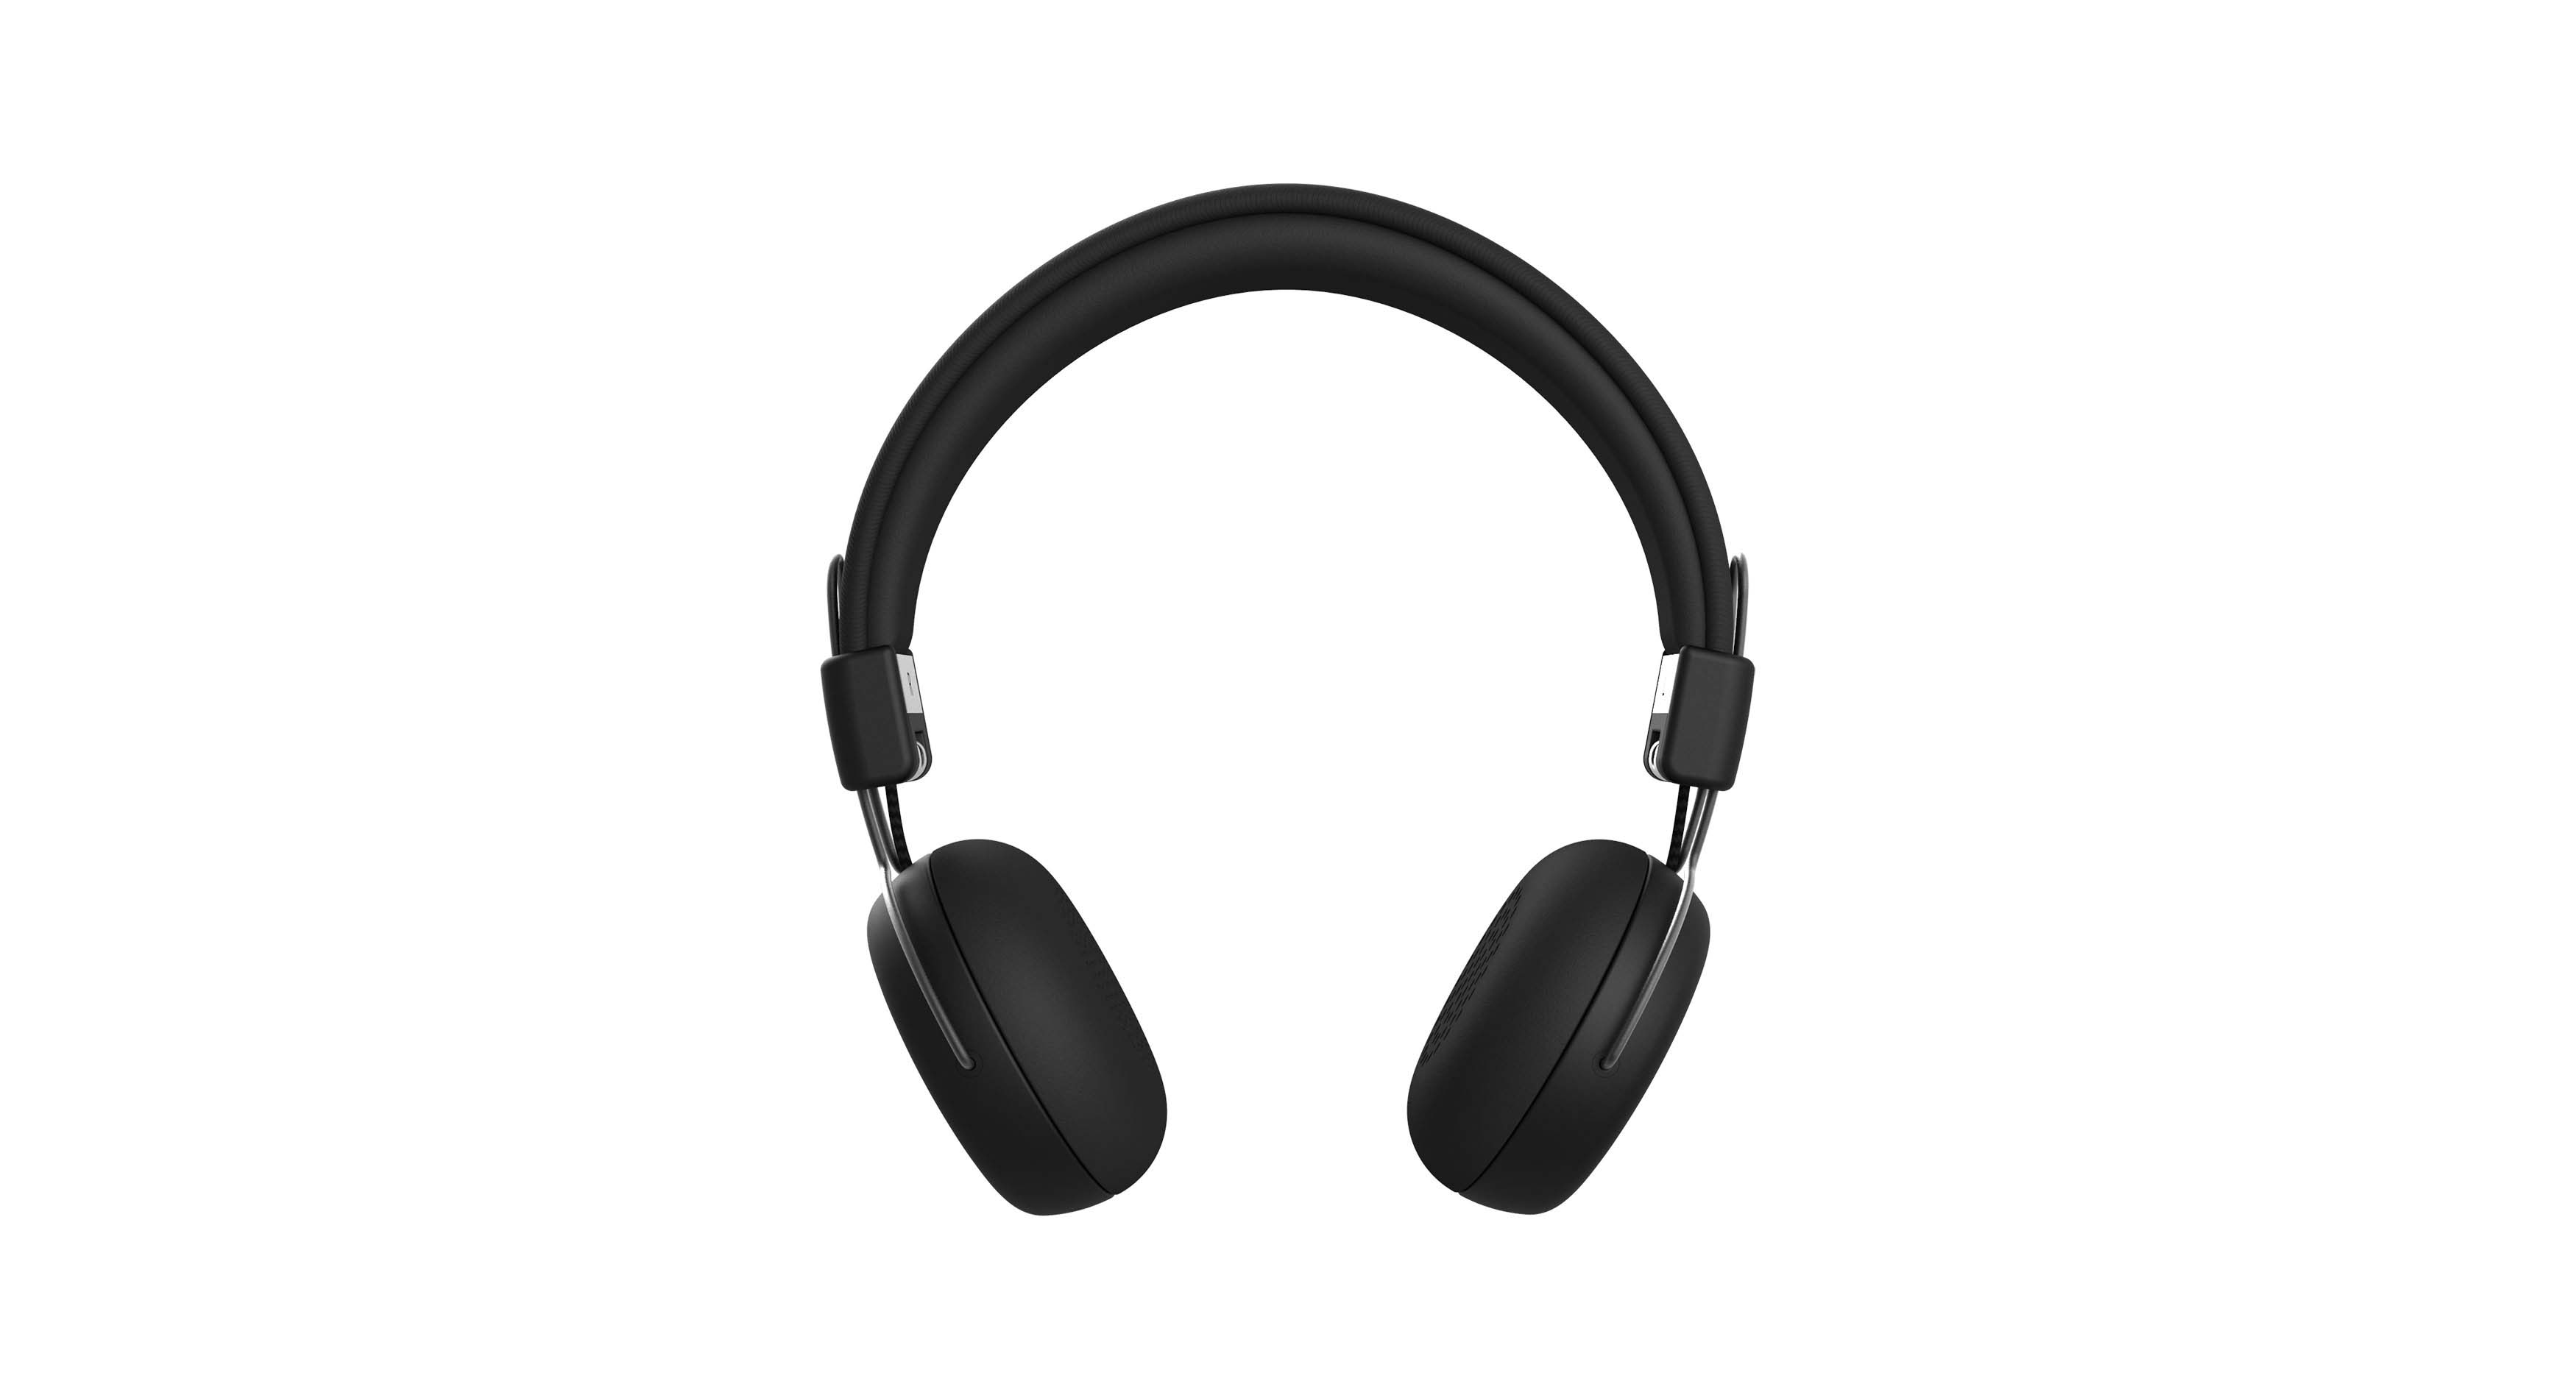 Casque audio bluetooth black edition